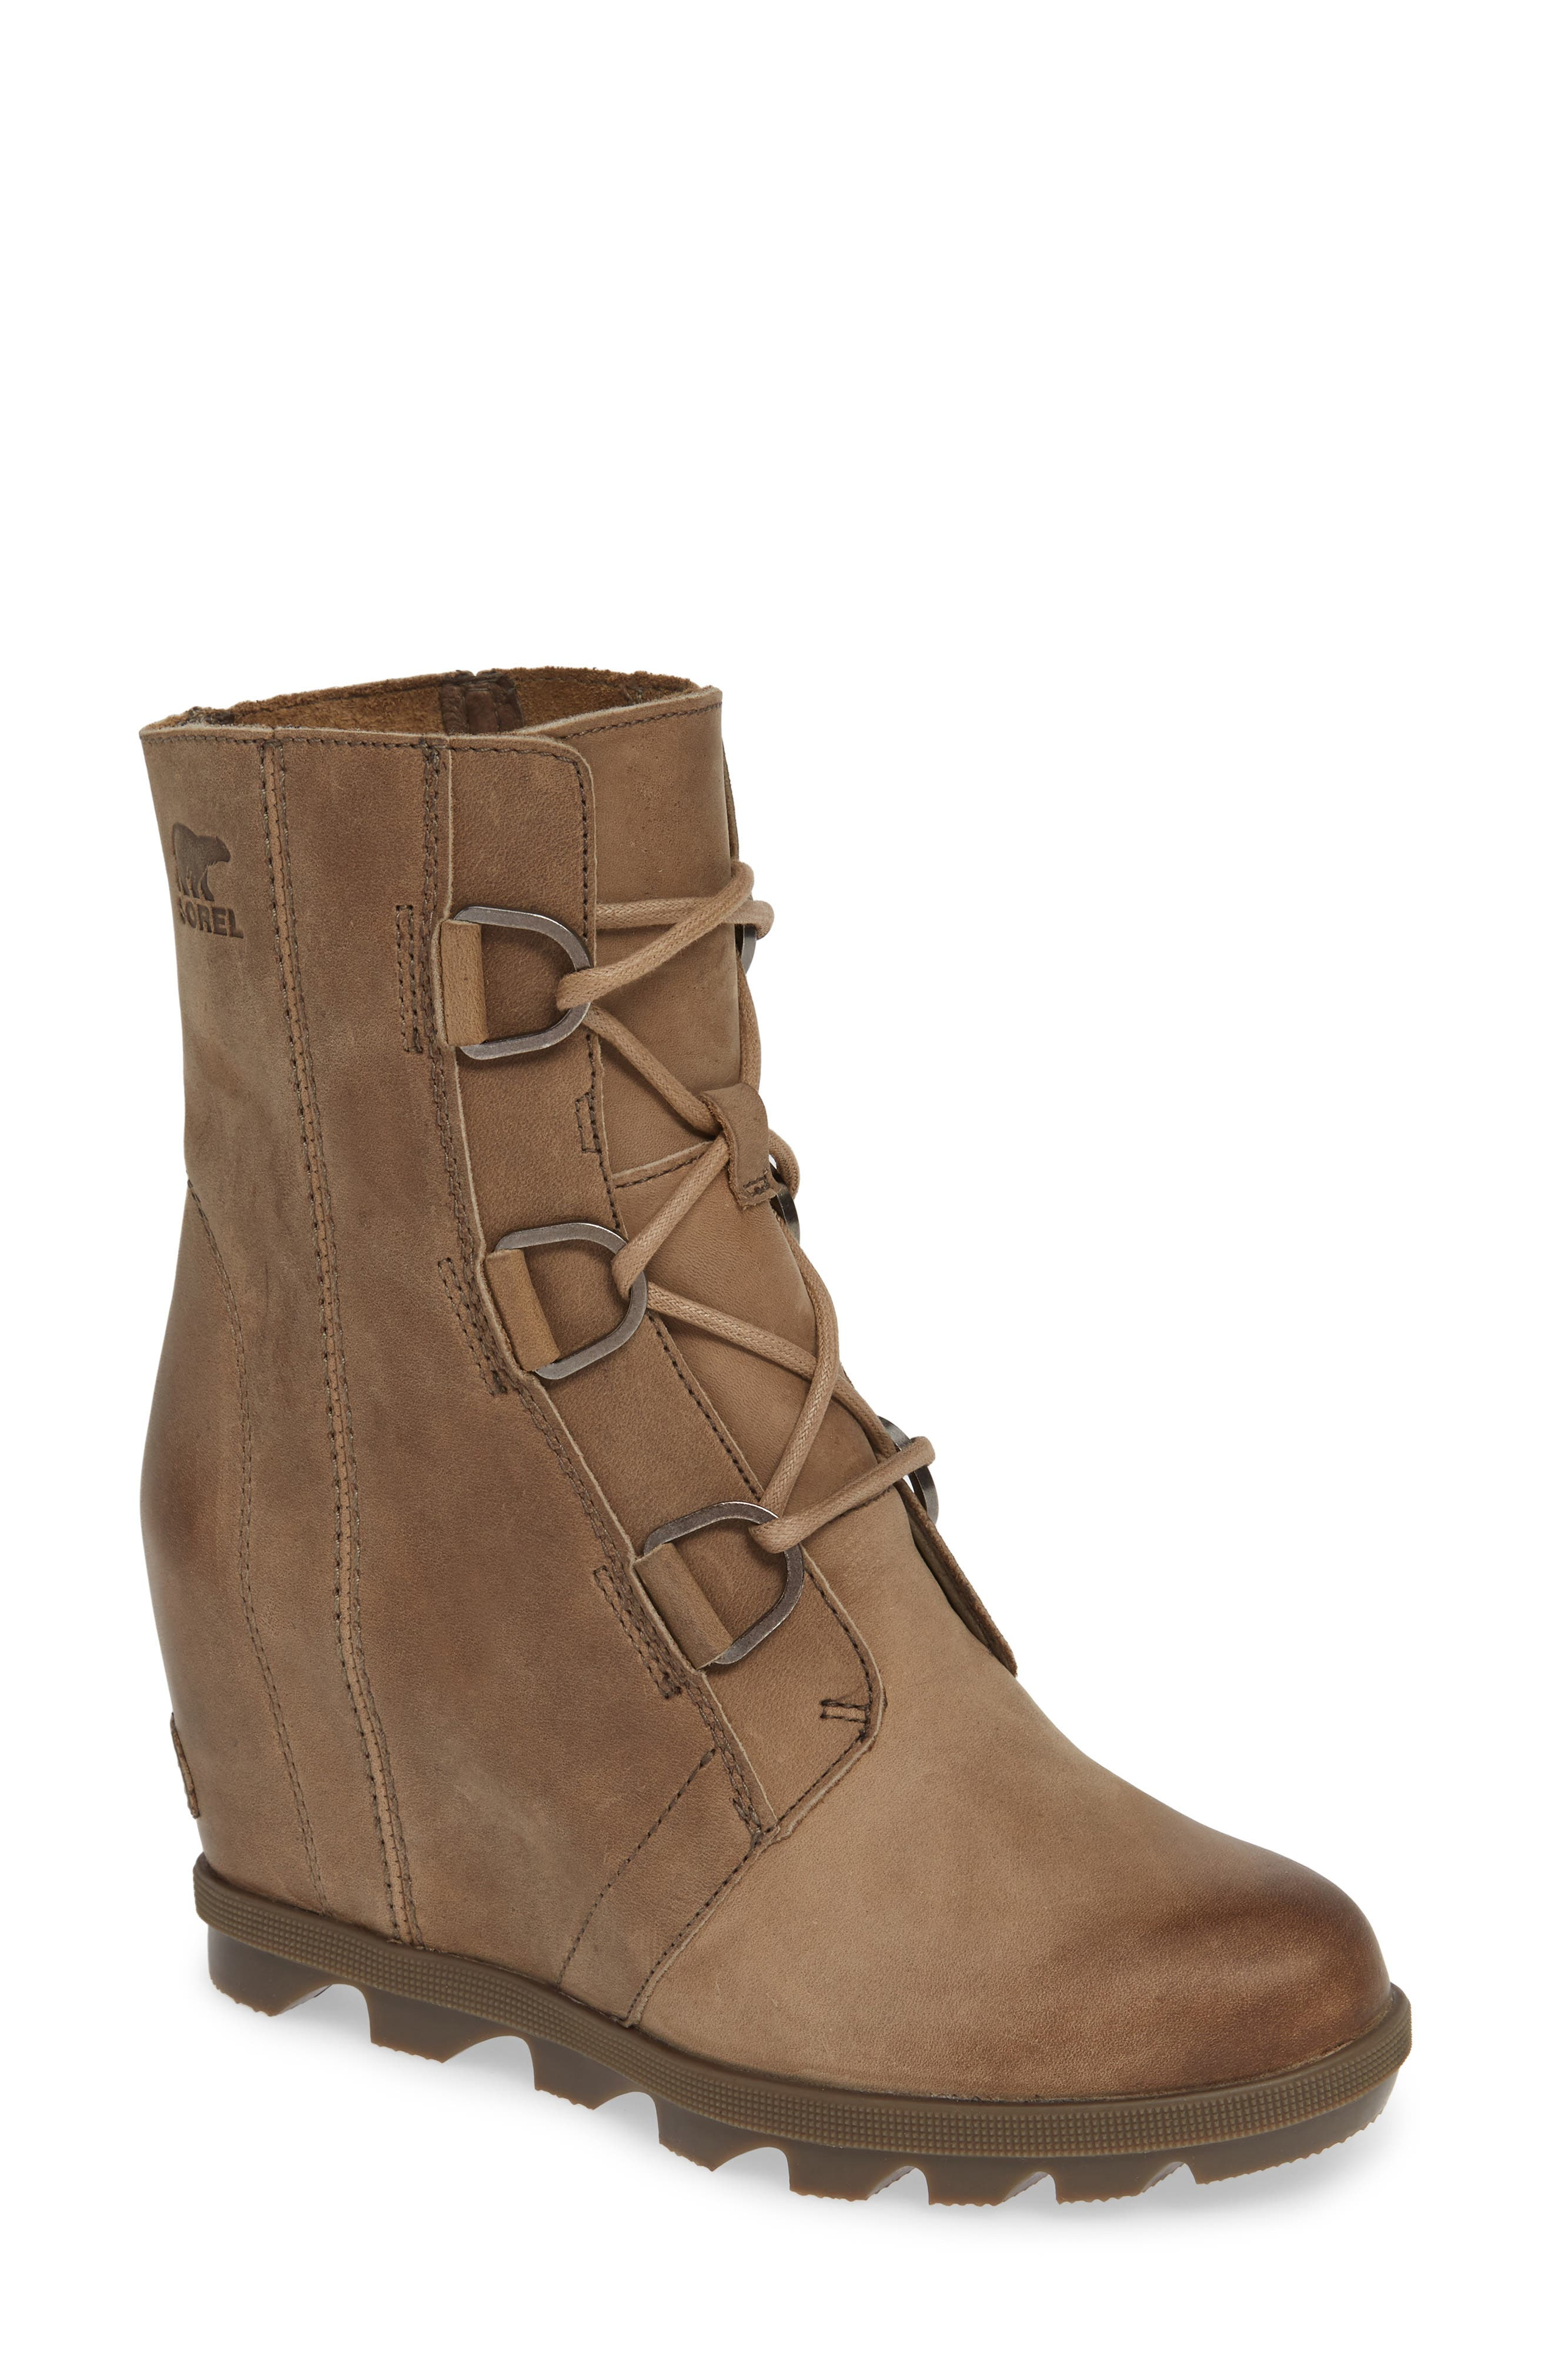 Sorel Joan Of Arctic Ii Waterproof Wedge Boot- Brown